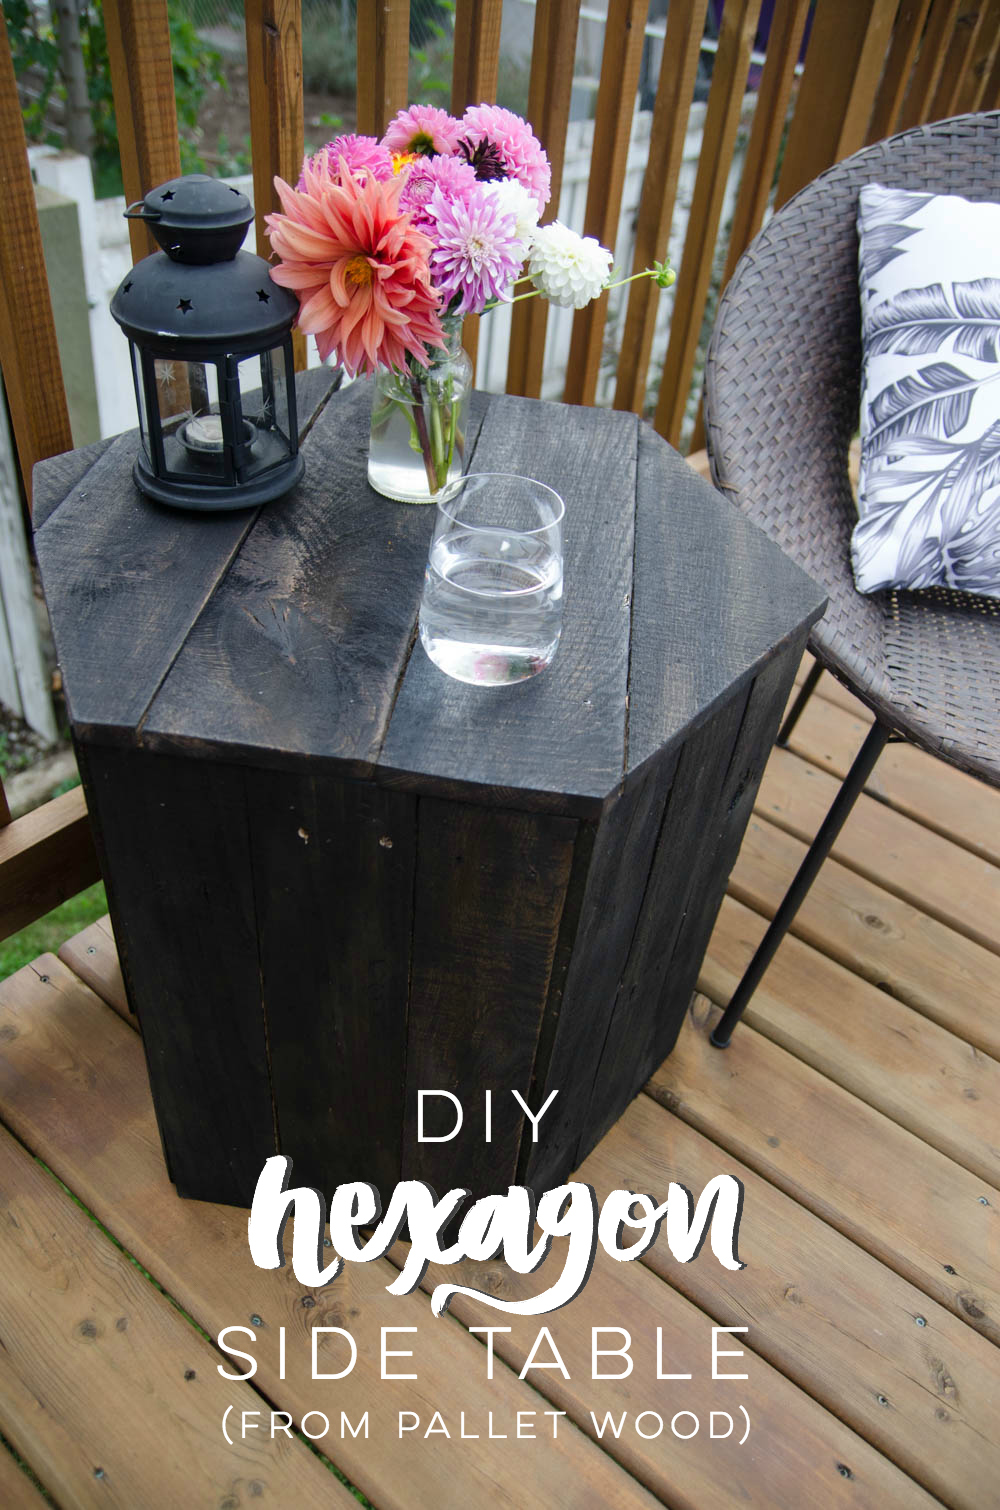 DIY Hexagon Side Table  I Canu0027t Believe This Is Made Out Of Pallet